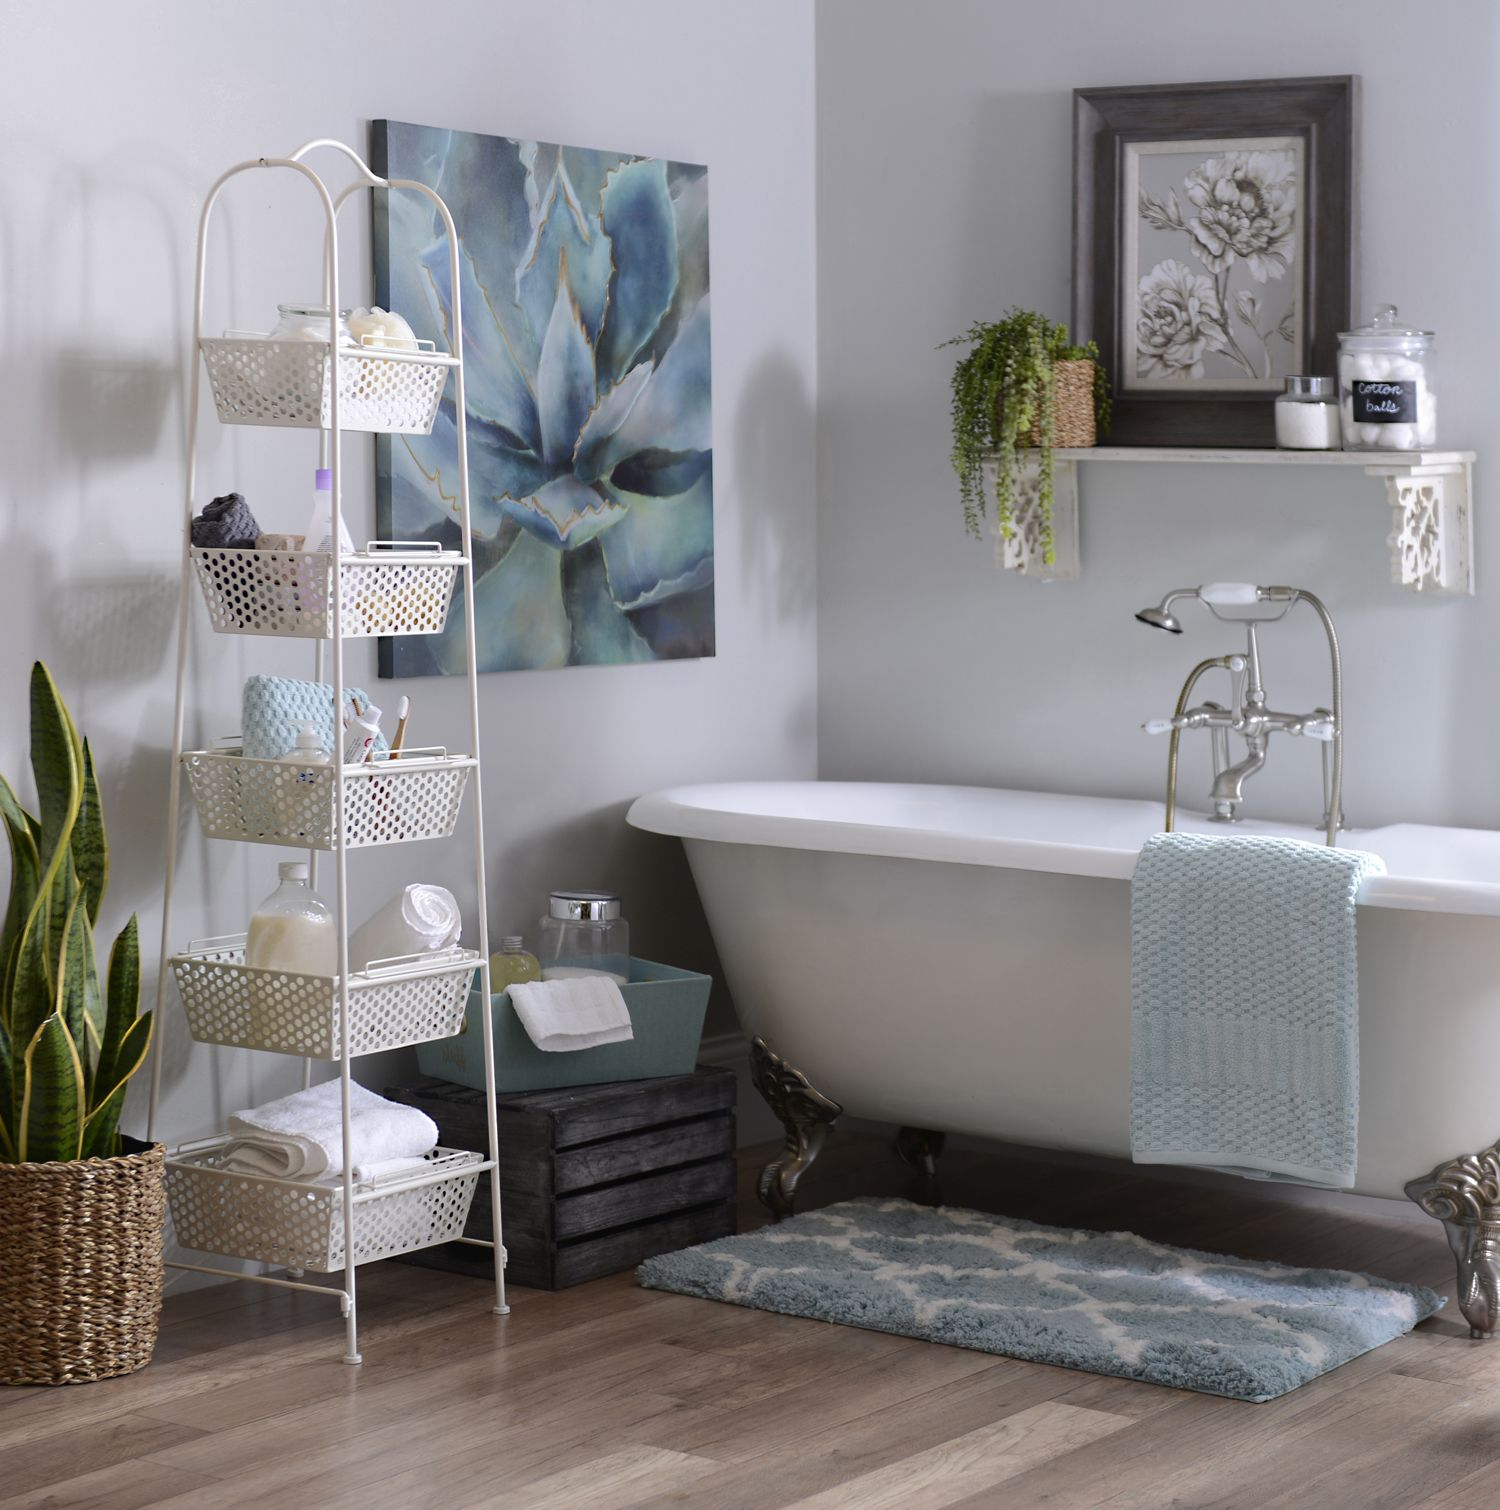 Shop Bathroom Decor: If There's One Room That Needs To Be Organized And Clean